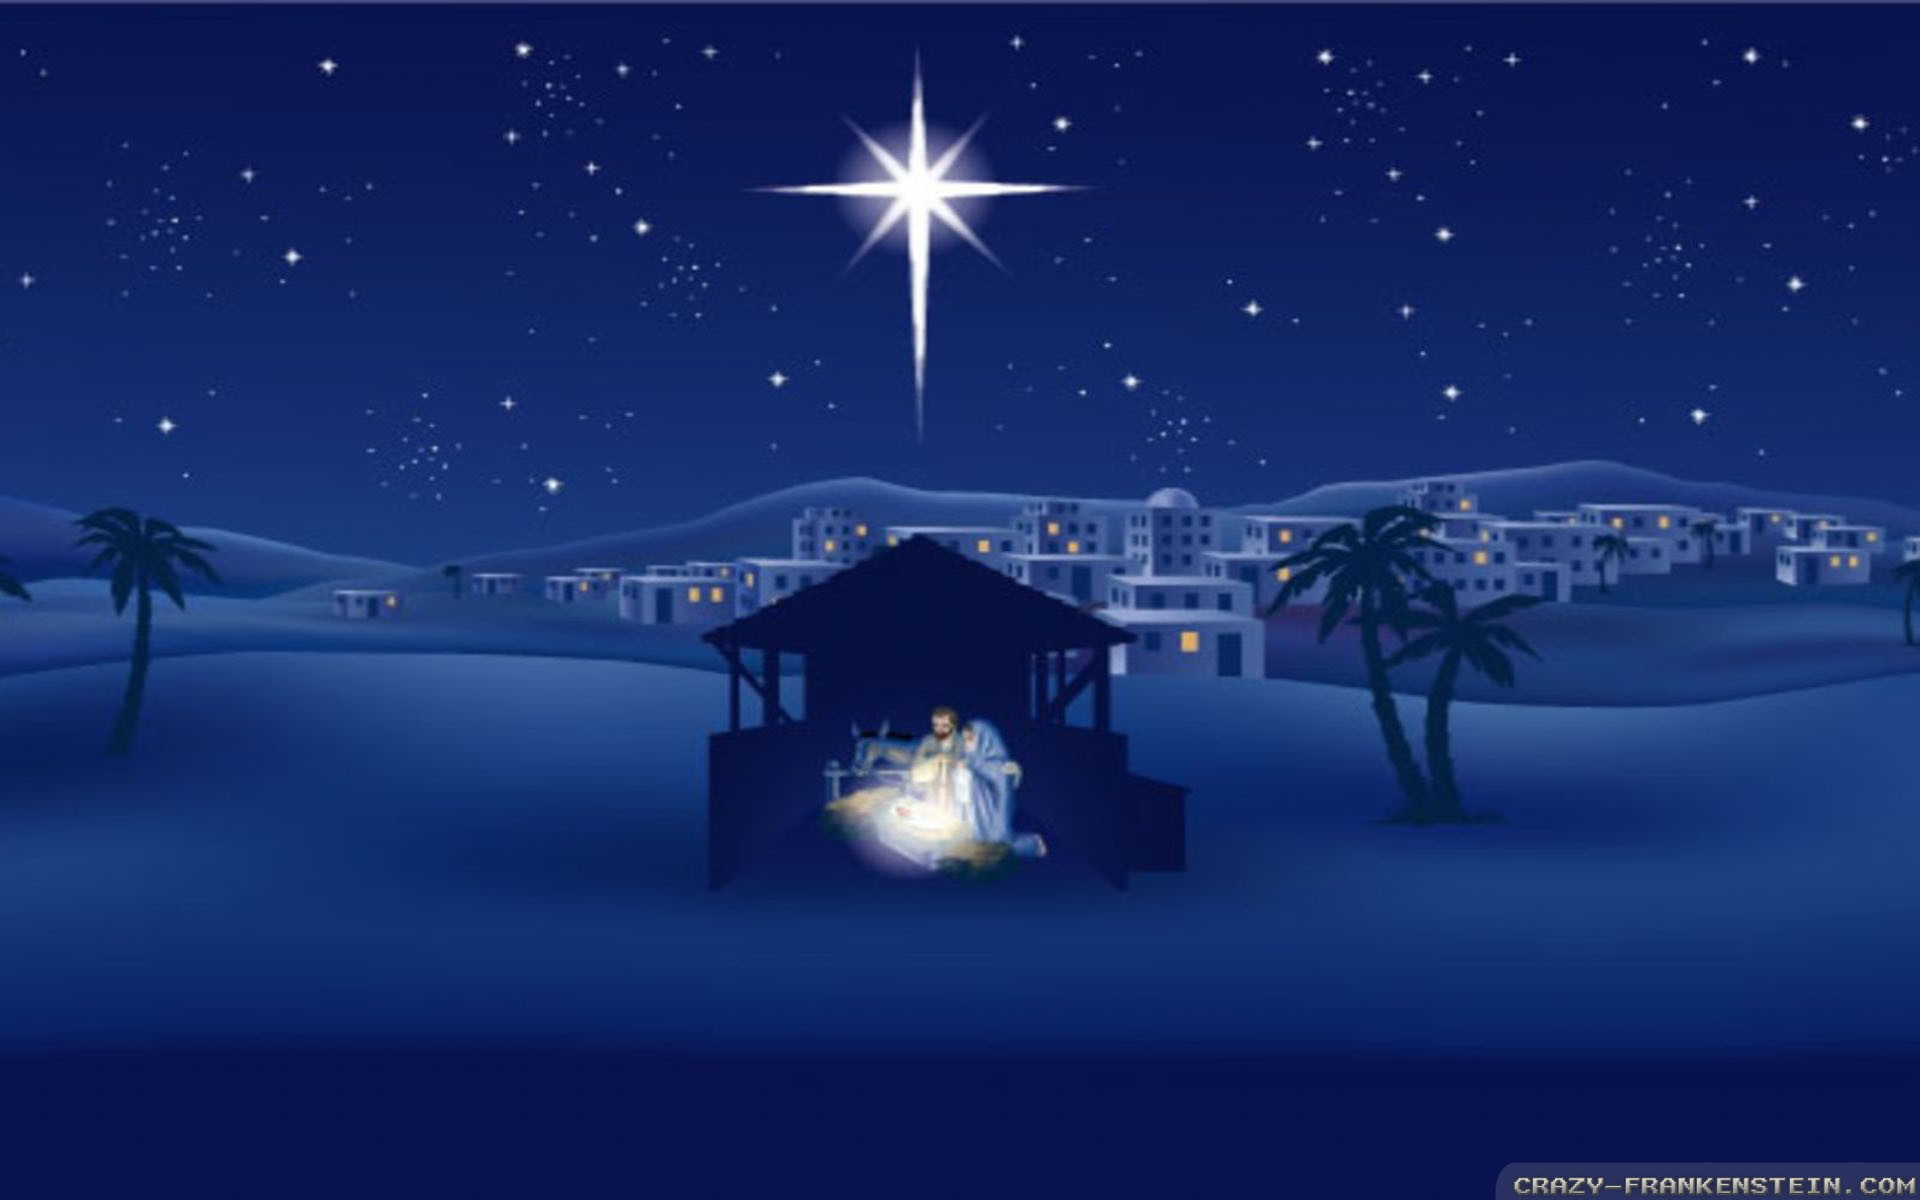 Wallpaper: The Birth Of Christ Religious wallpapers. Resolution: 1024×768 |  1280×1024 | 1600×1200. Widescreen Res: 1440×900 | 1680×1050 | 1920×1200